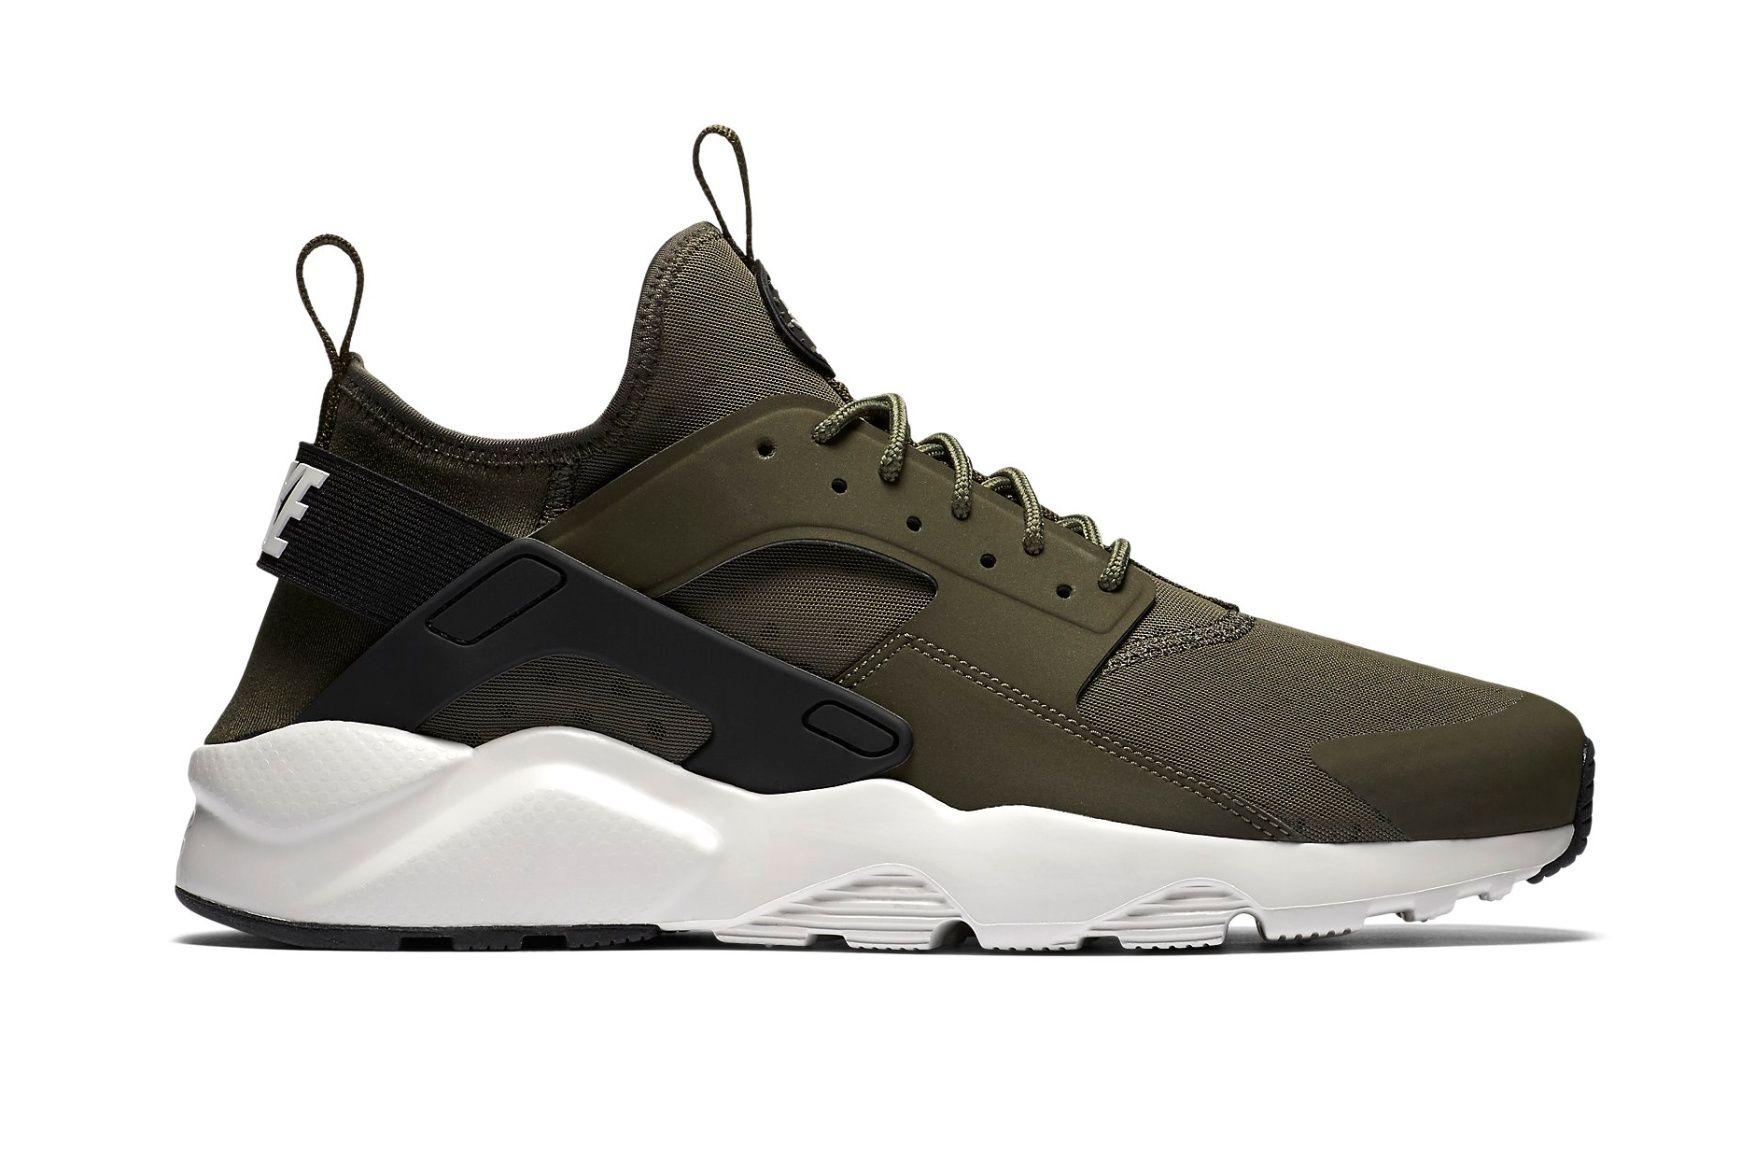 Nike Delivers A Cargo Iteration Of The Air Huarache Ultra Air Huarache Ultra Nike Air Huarache Ultra Nike Air Huarache